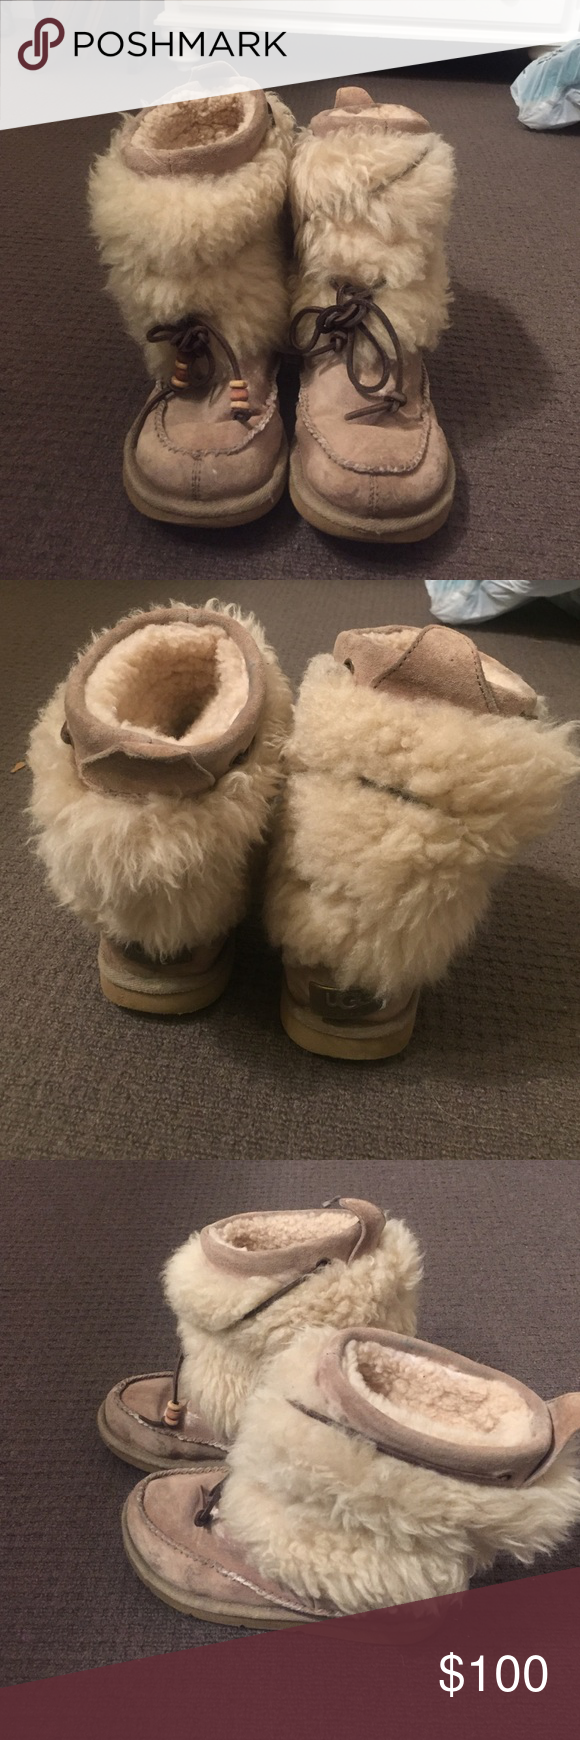 b989bc9550f Ugg boot with fur outside and drawstring . Size 5 Ugg Australia ...